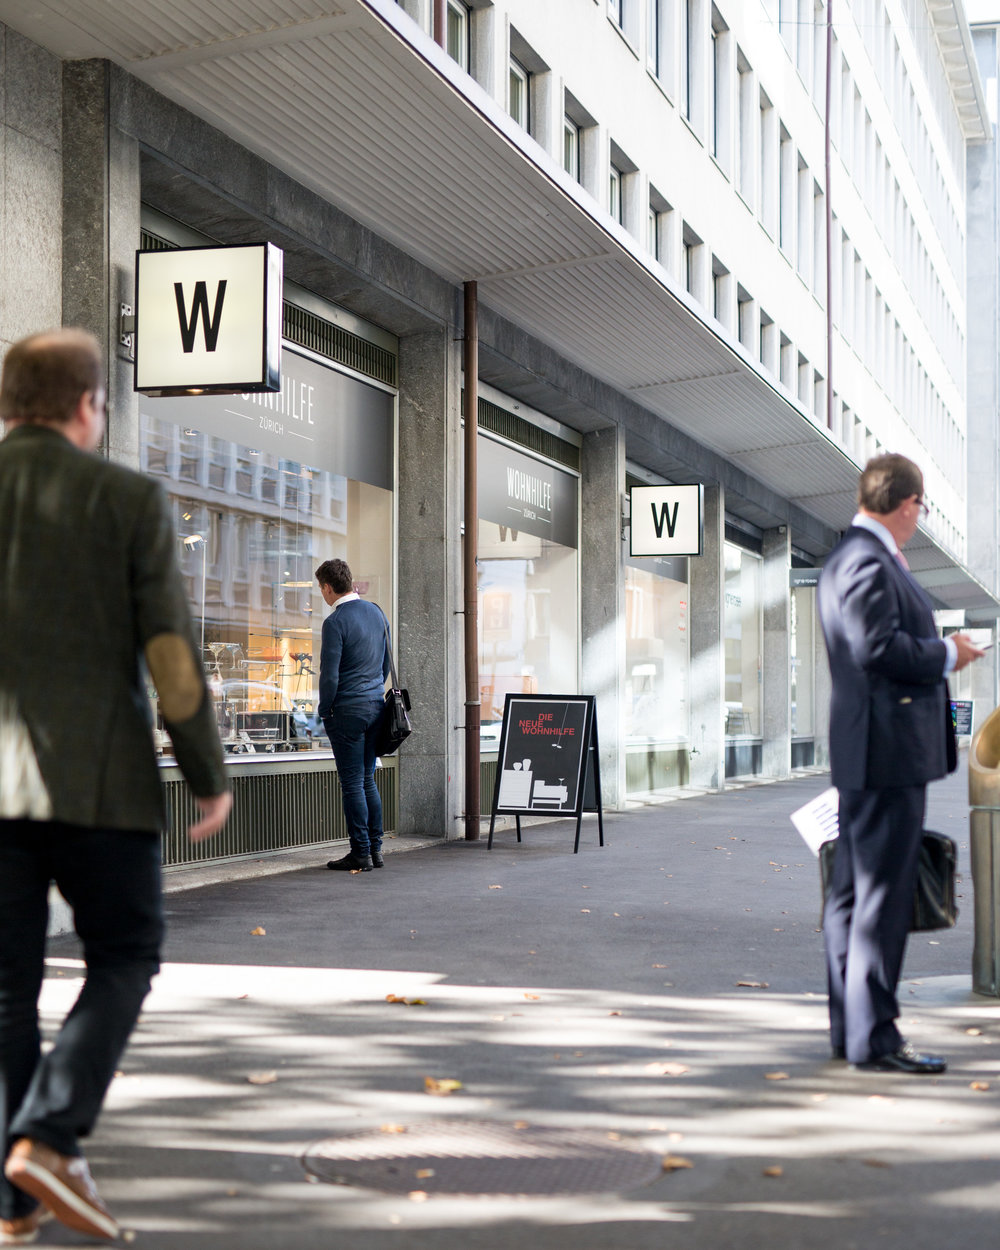 Swiss Design Furniture - Since 1945 Wohnhilfe has been one of the leading furniture stores in Zurich. Located on Claridenstrasse 25, only minutes away from Bahnhofstrasse and Paradeplatz, we are home to over 30 premium brands mainly from Switzerland, Italy and Germany.